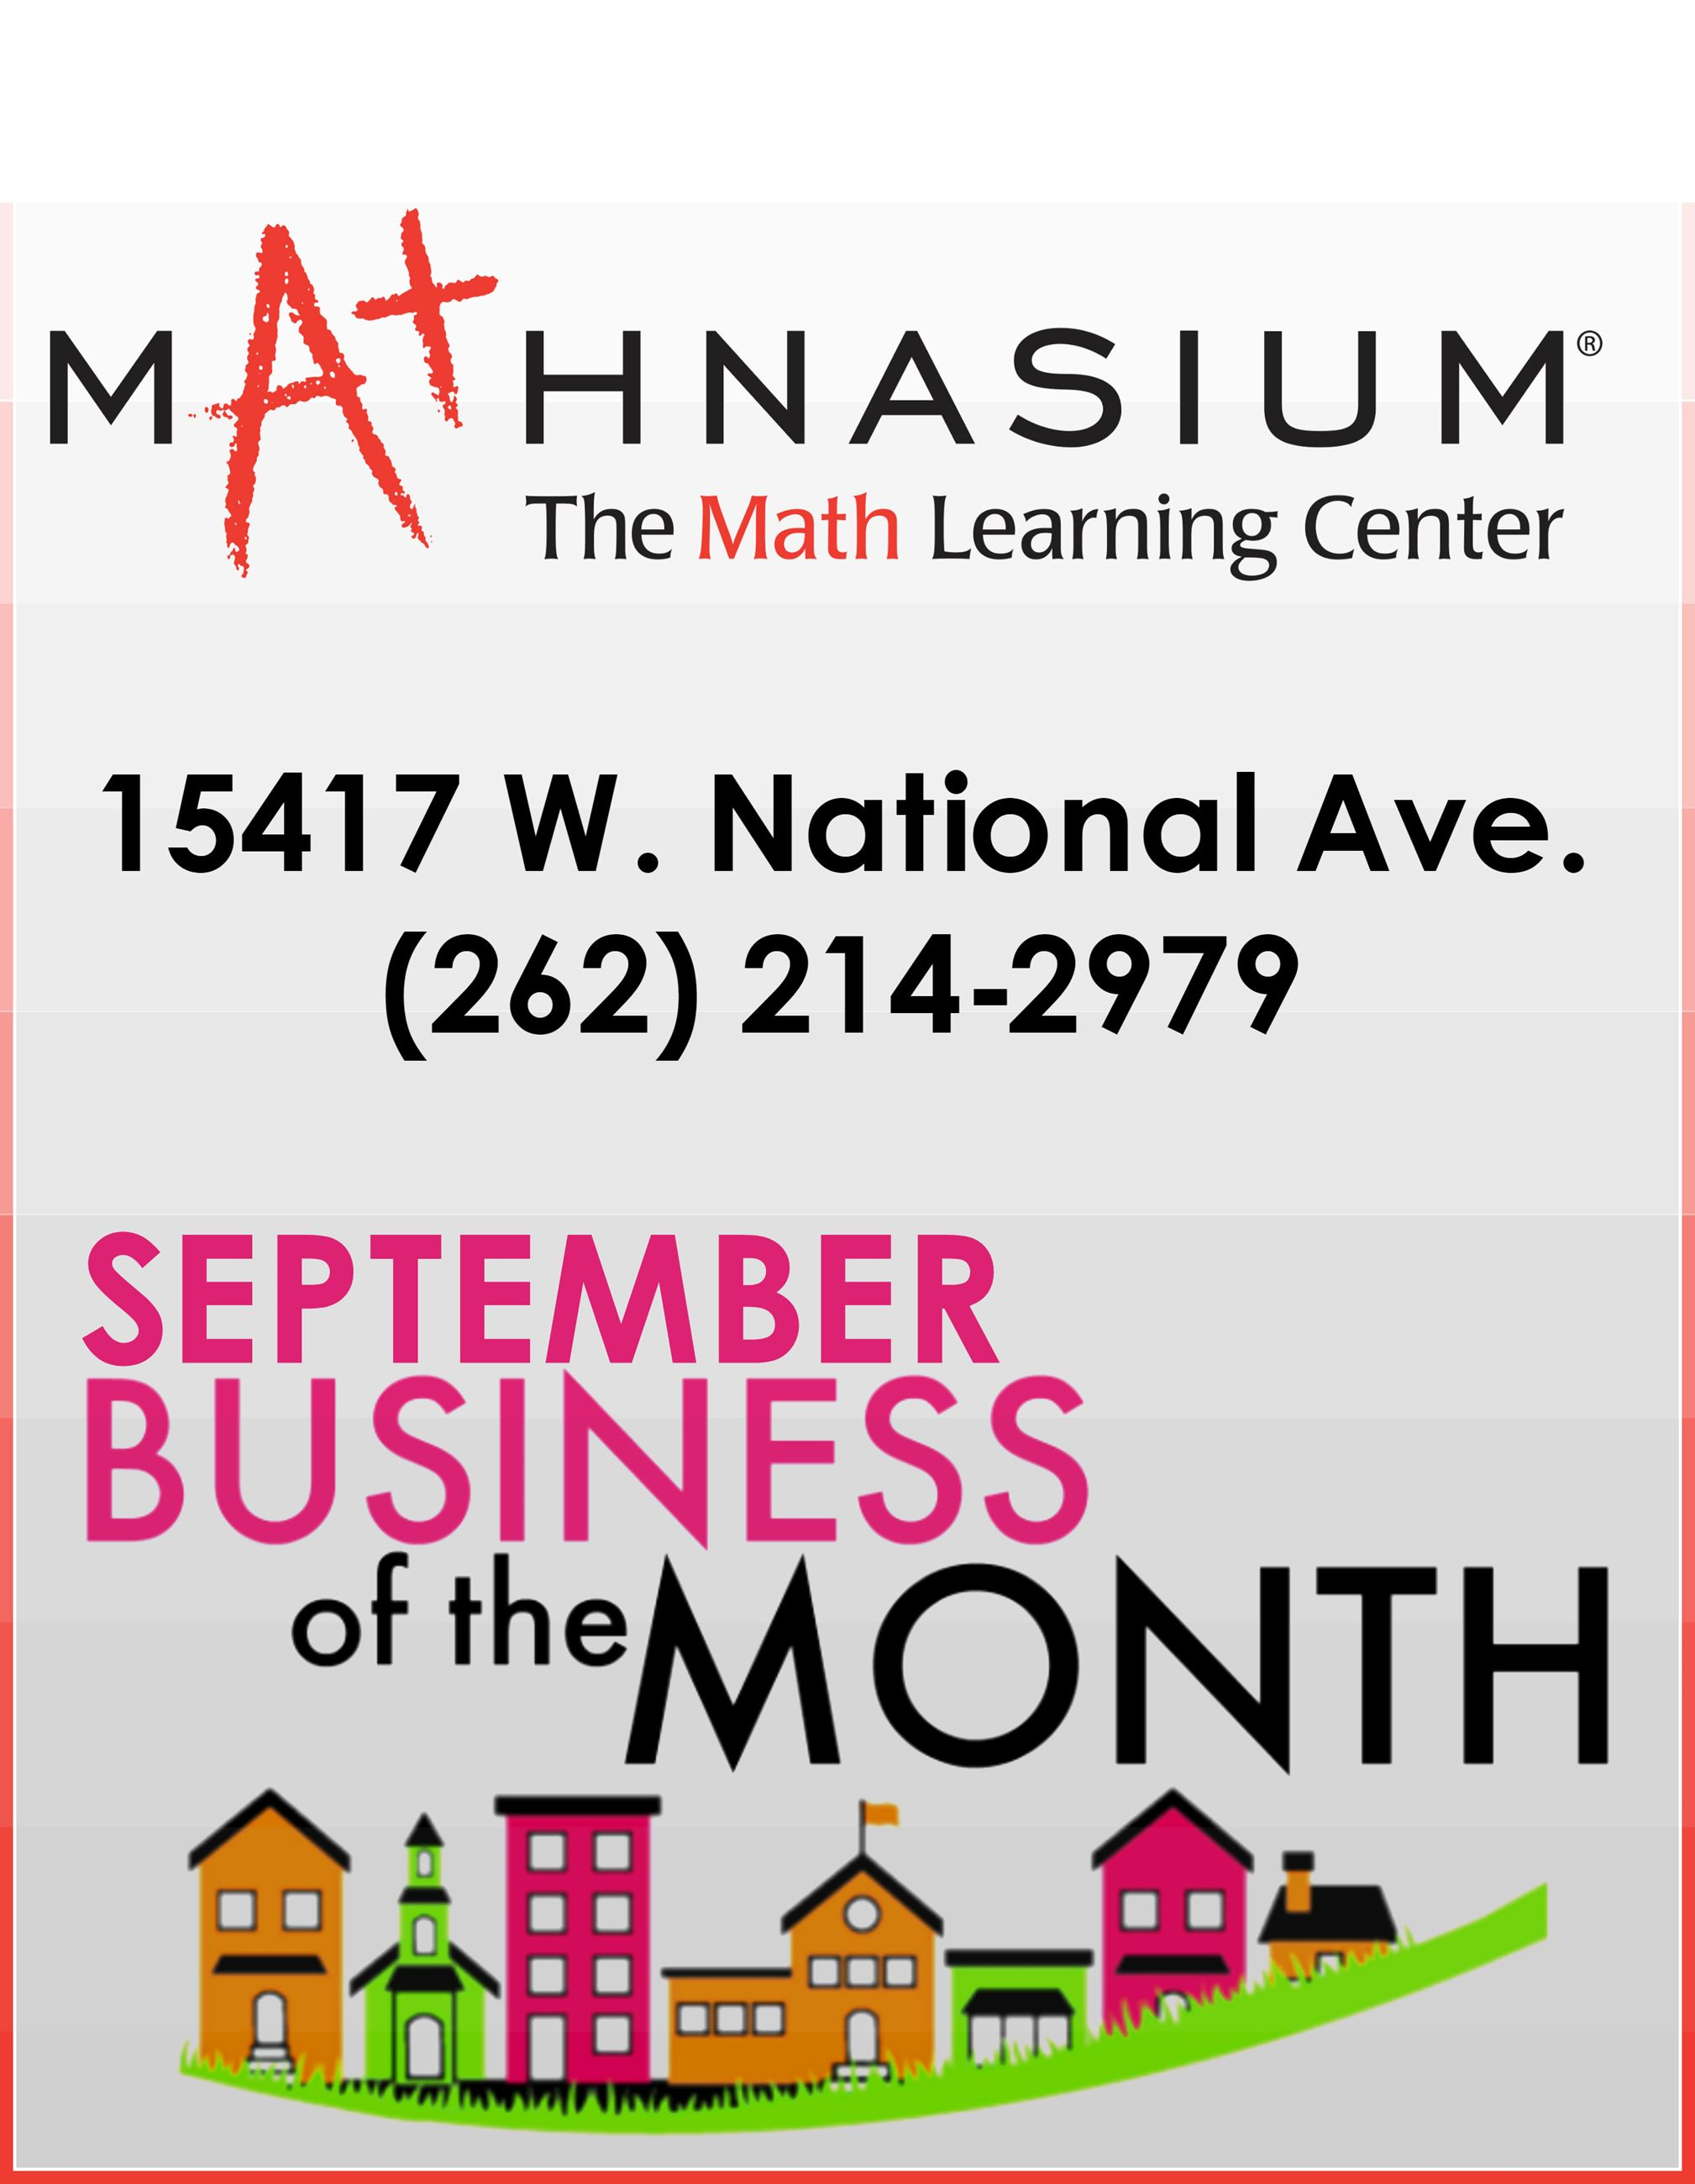 Mathnasium Site Slide